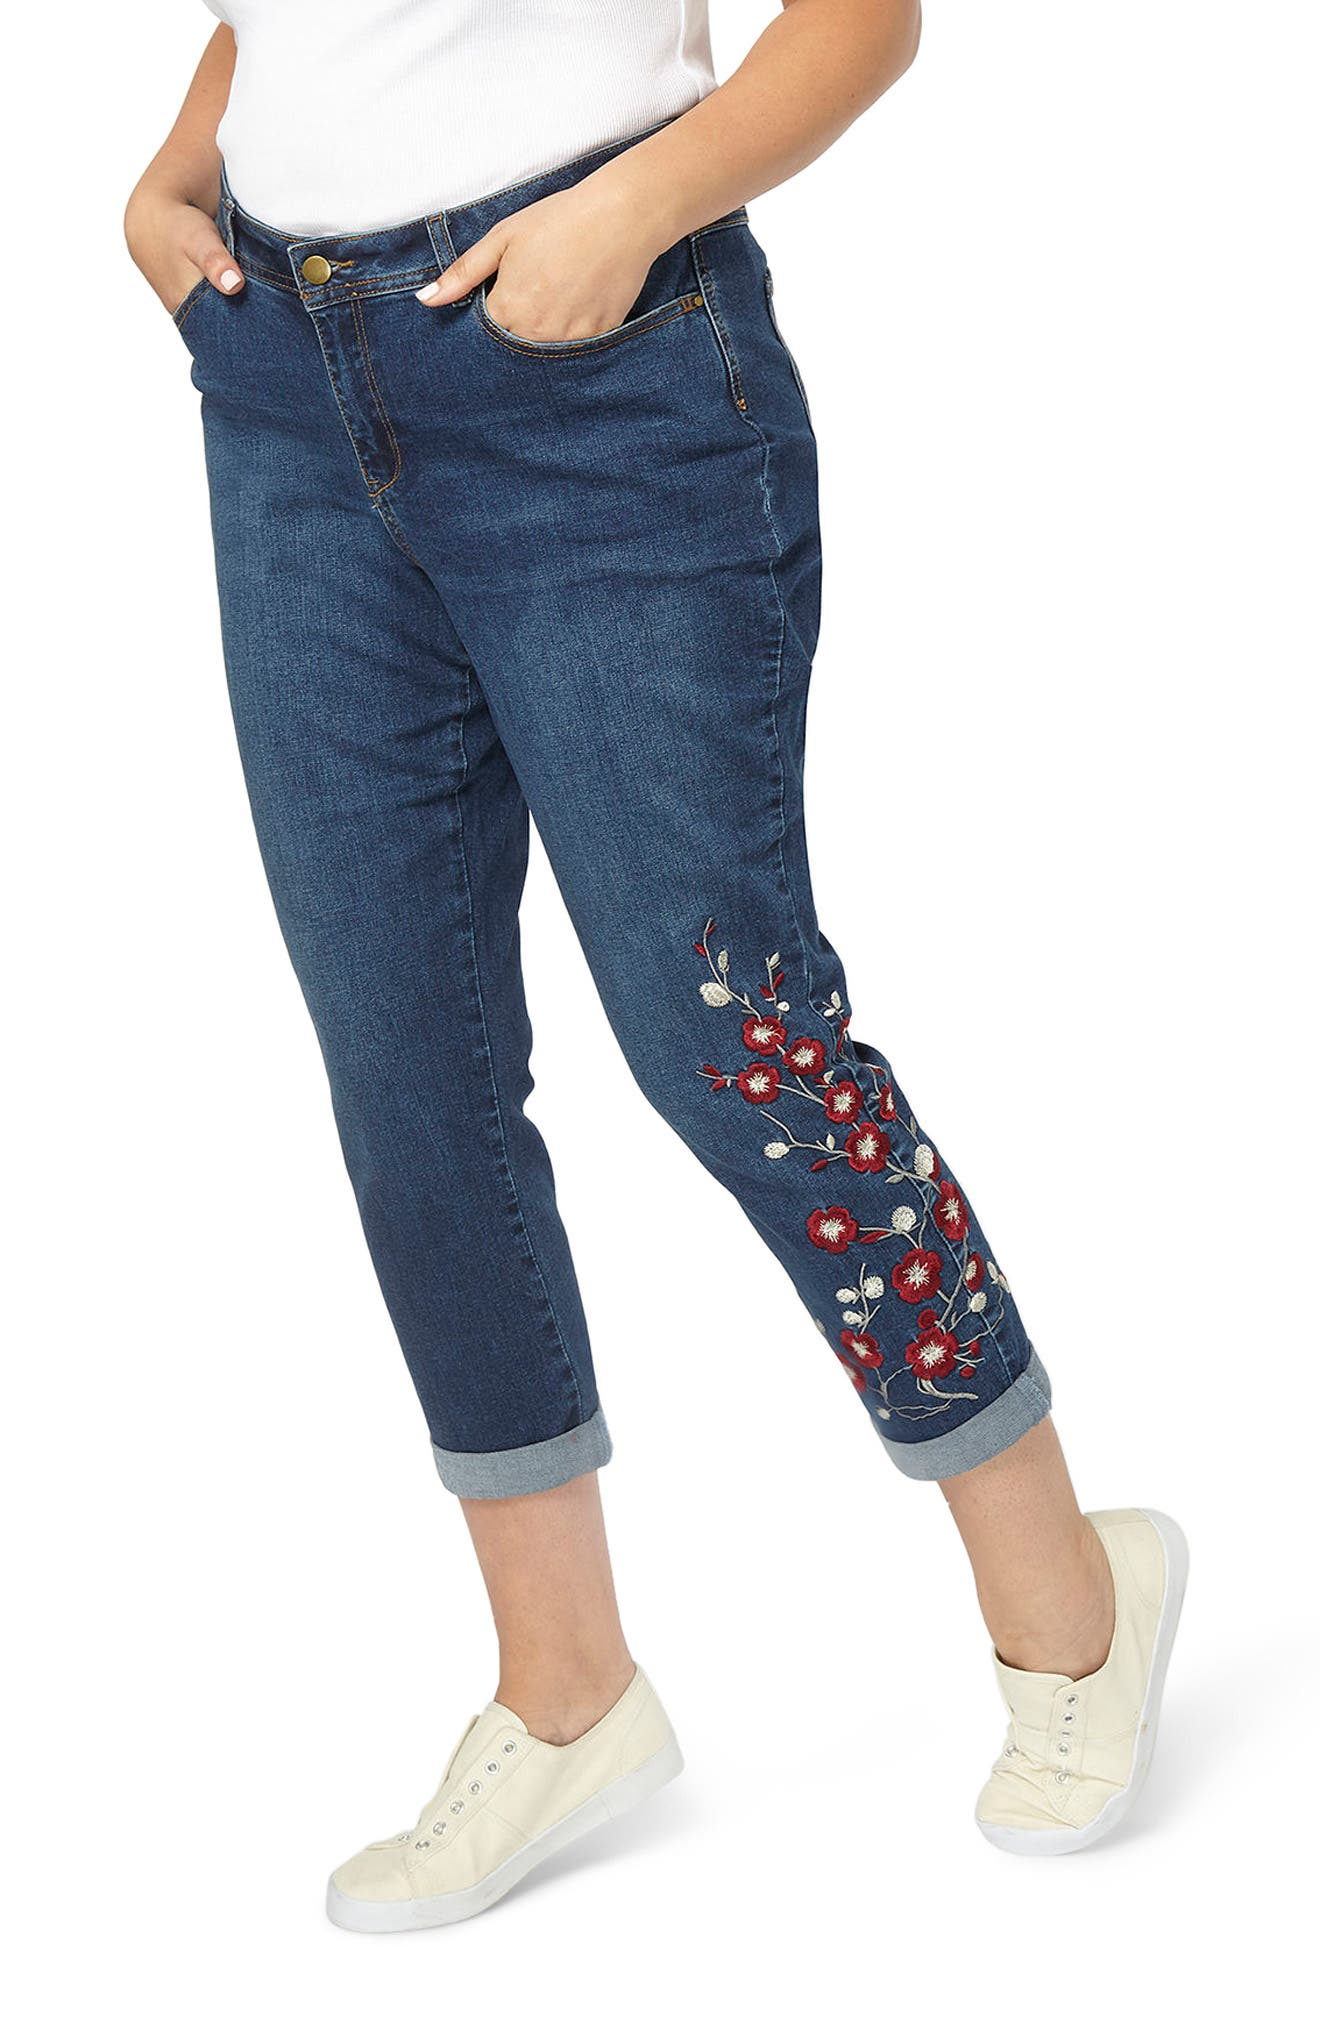 Alternate Image 1 Selected - Evans Embroidered Crop Boyfriend Jeans (Plus Size)